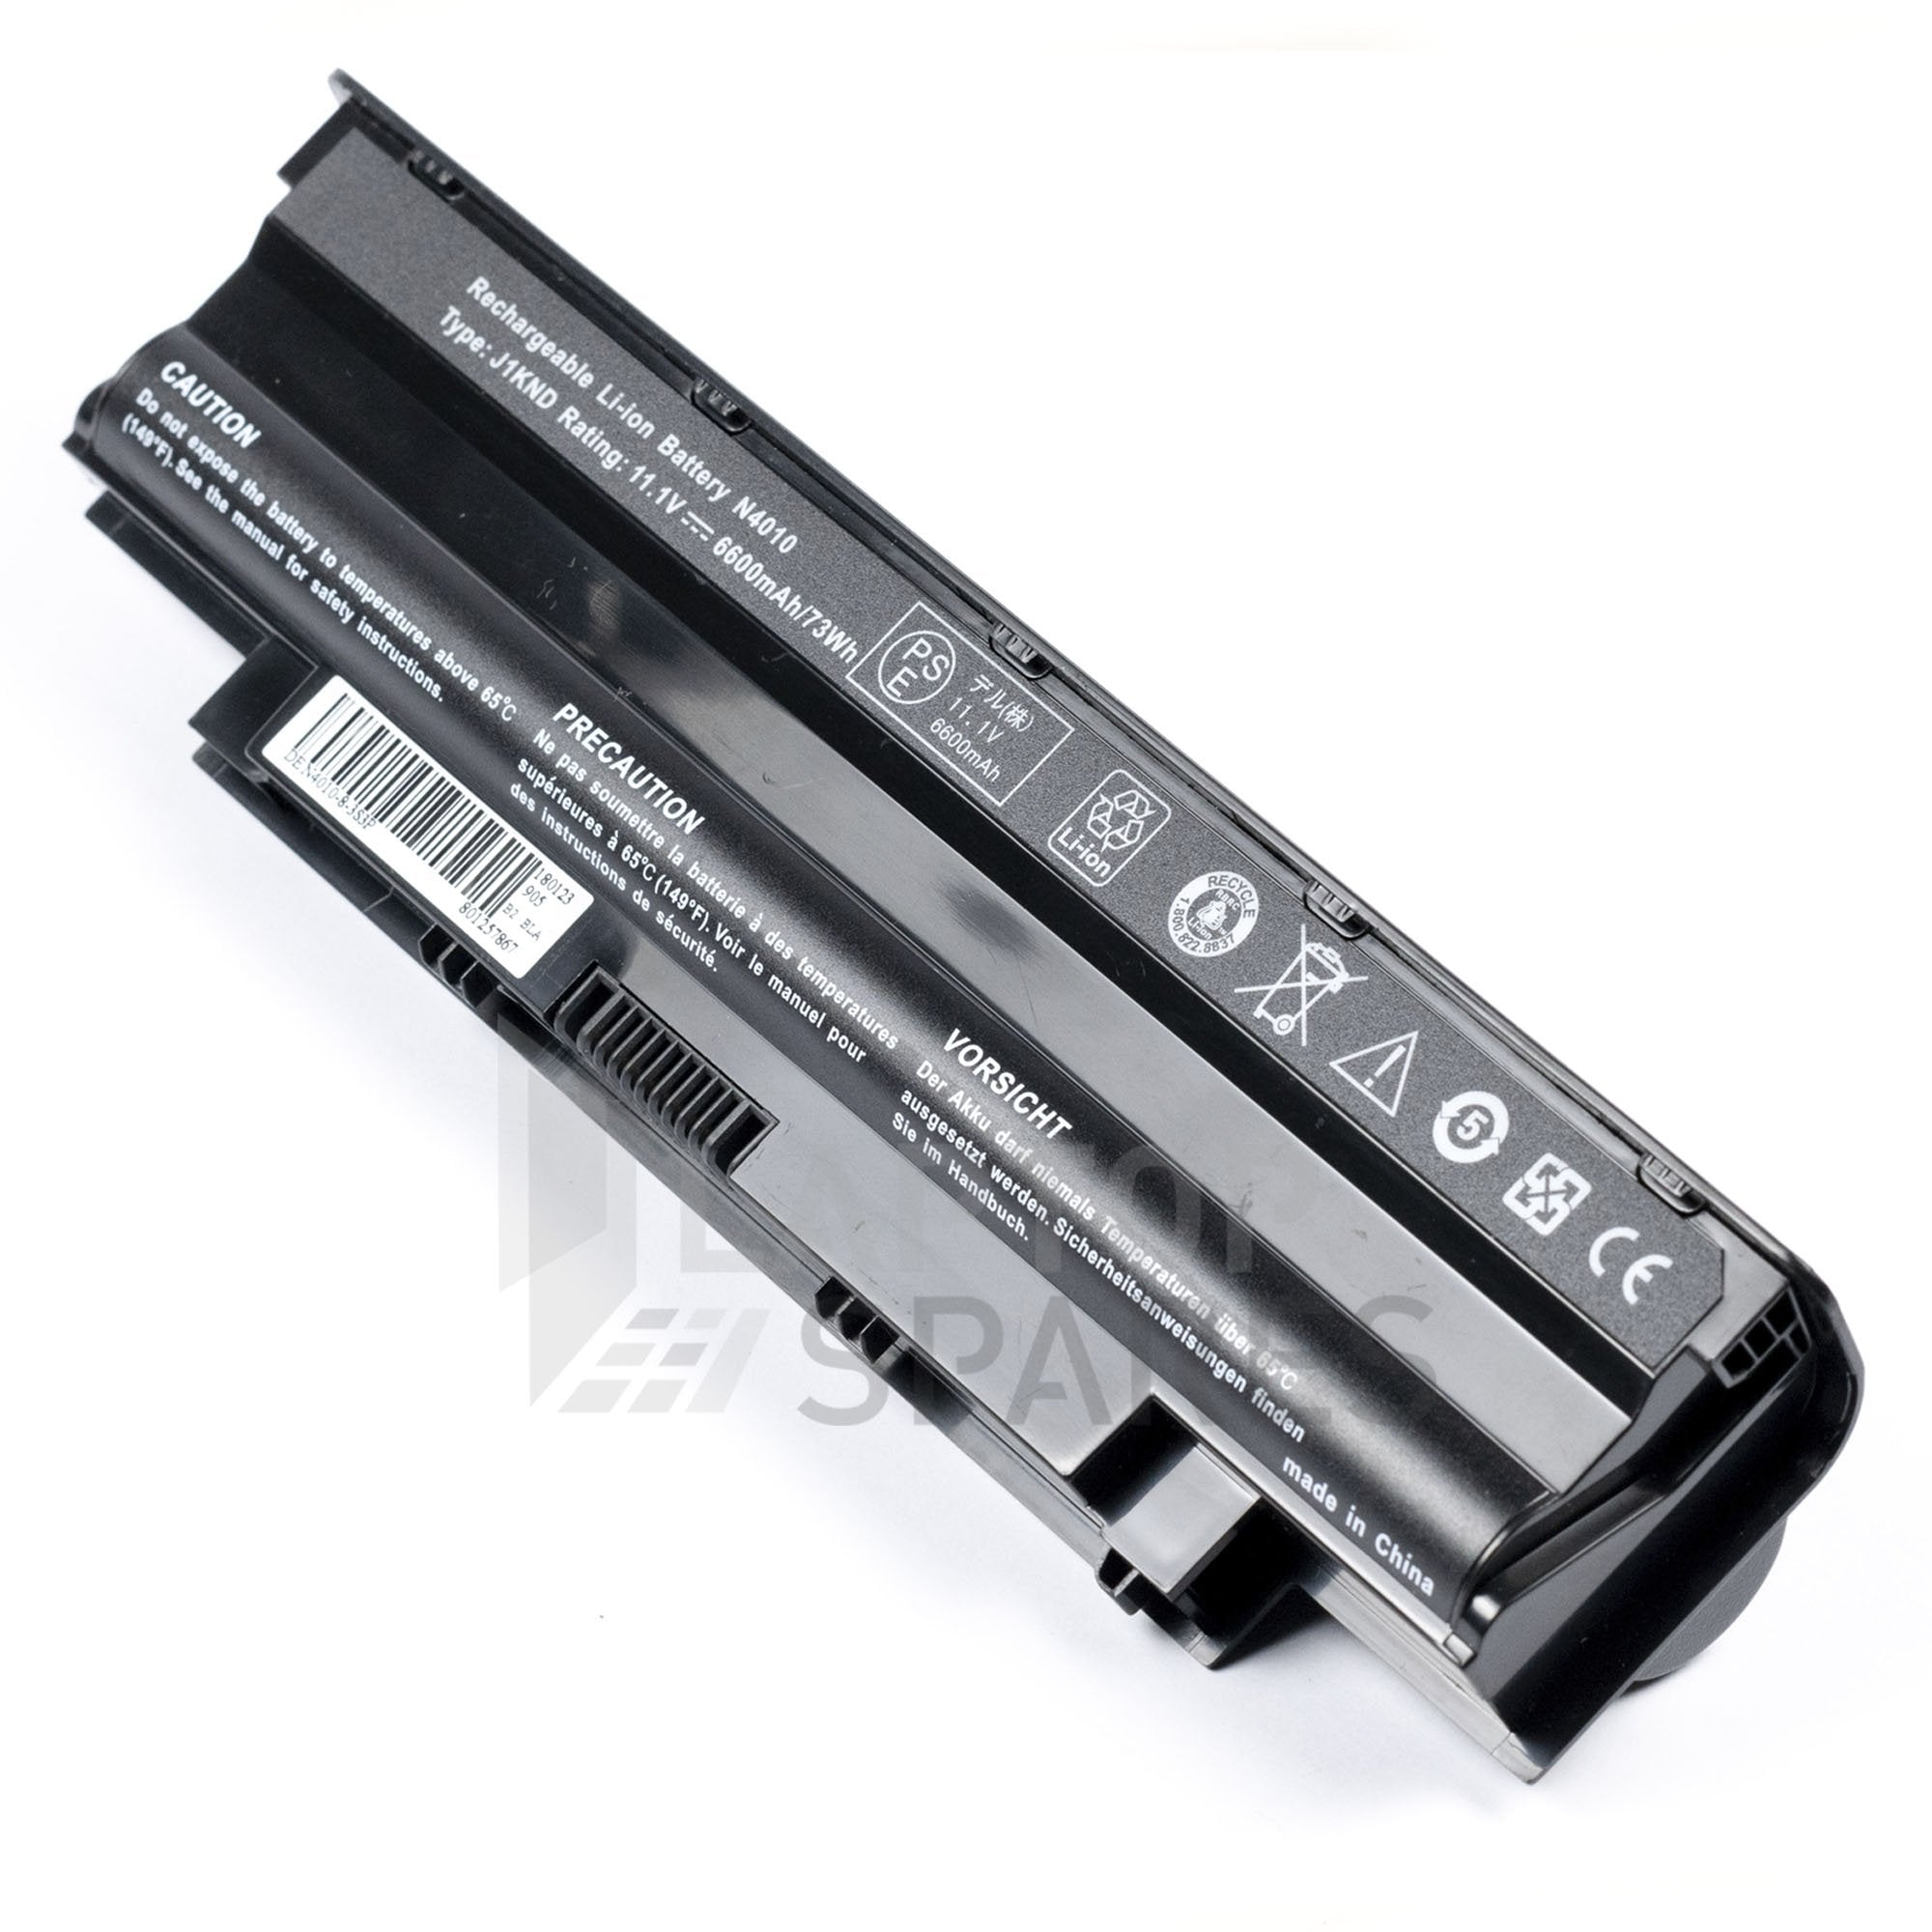 Dell Inspiron N5030D 6600mAh 9 Cell Battery